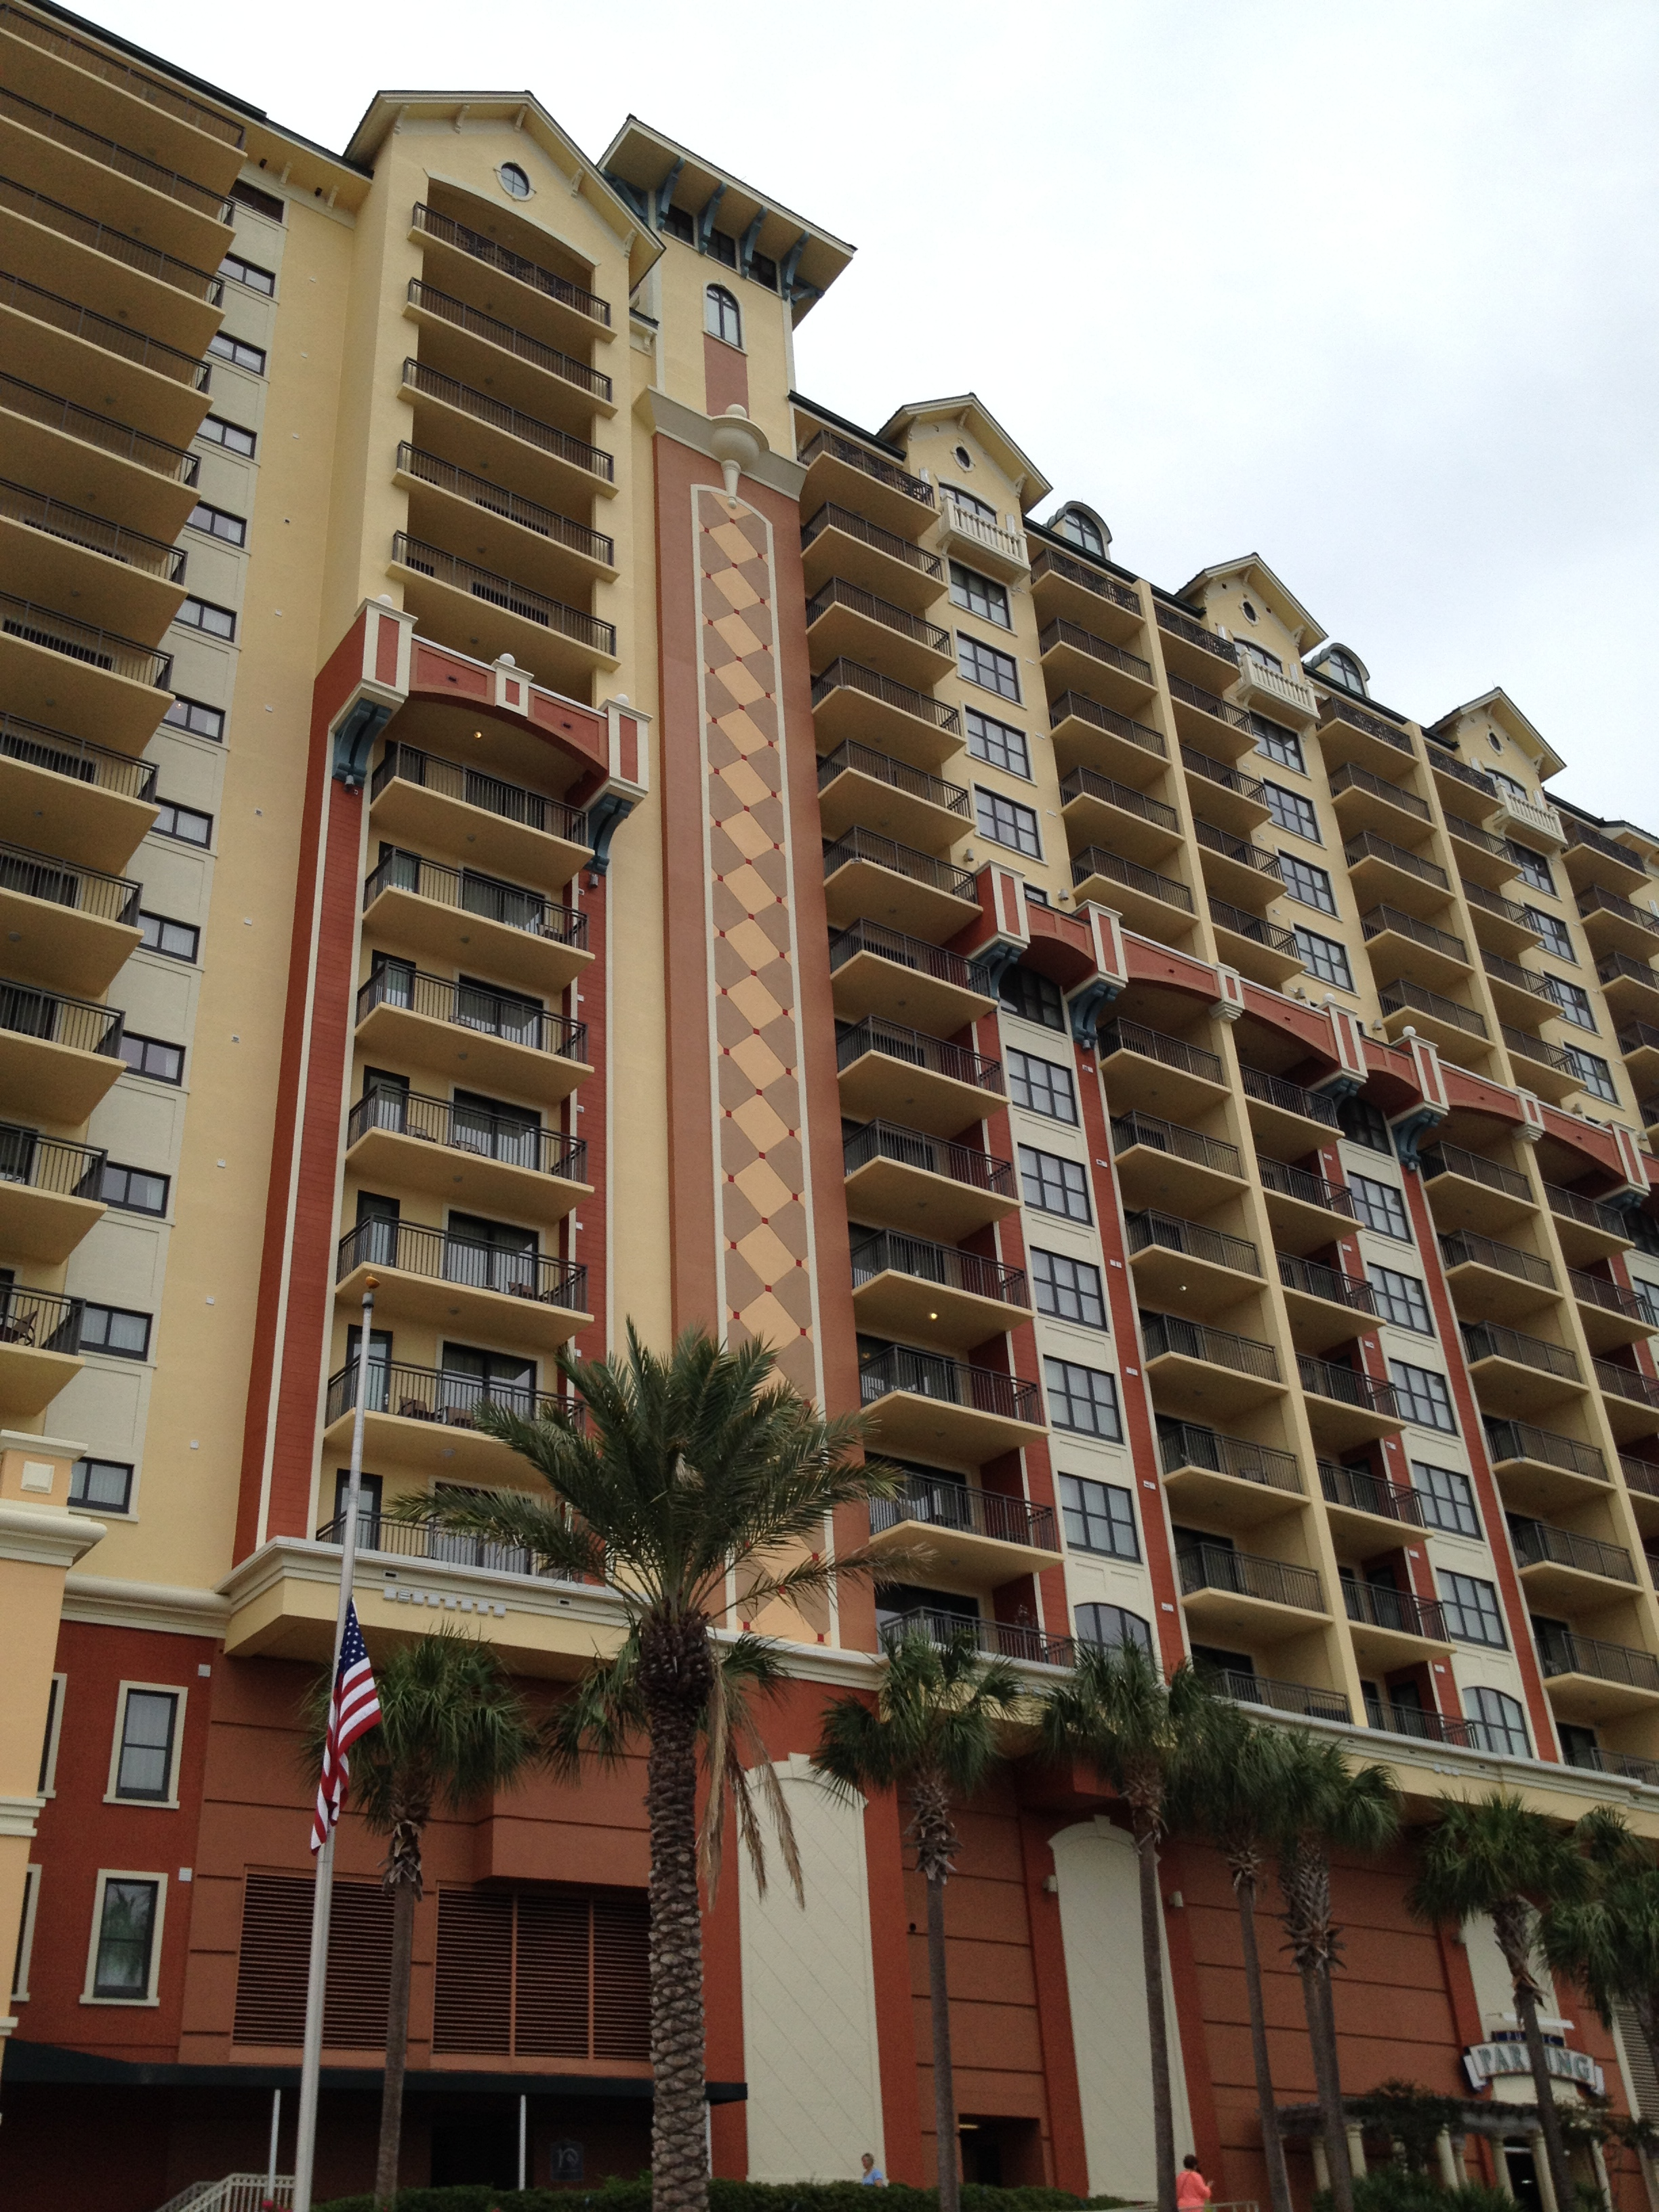 HarborWalk Village in Destin, Florida: Brandcation #FinalDESTINation15